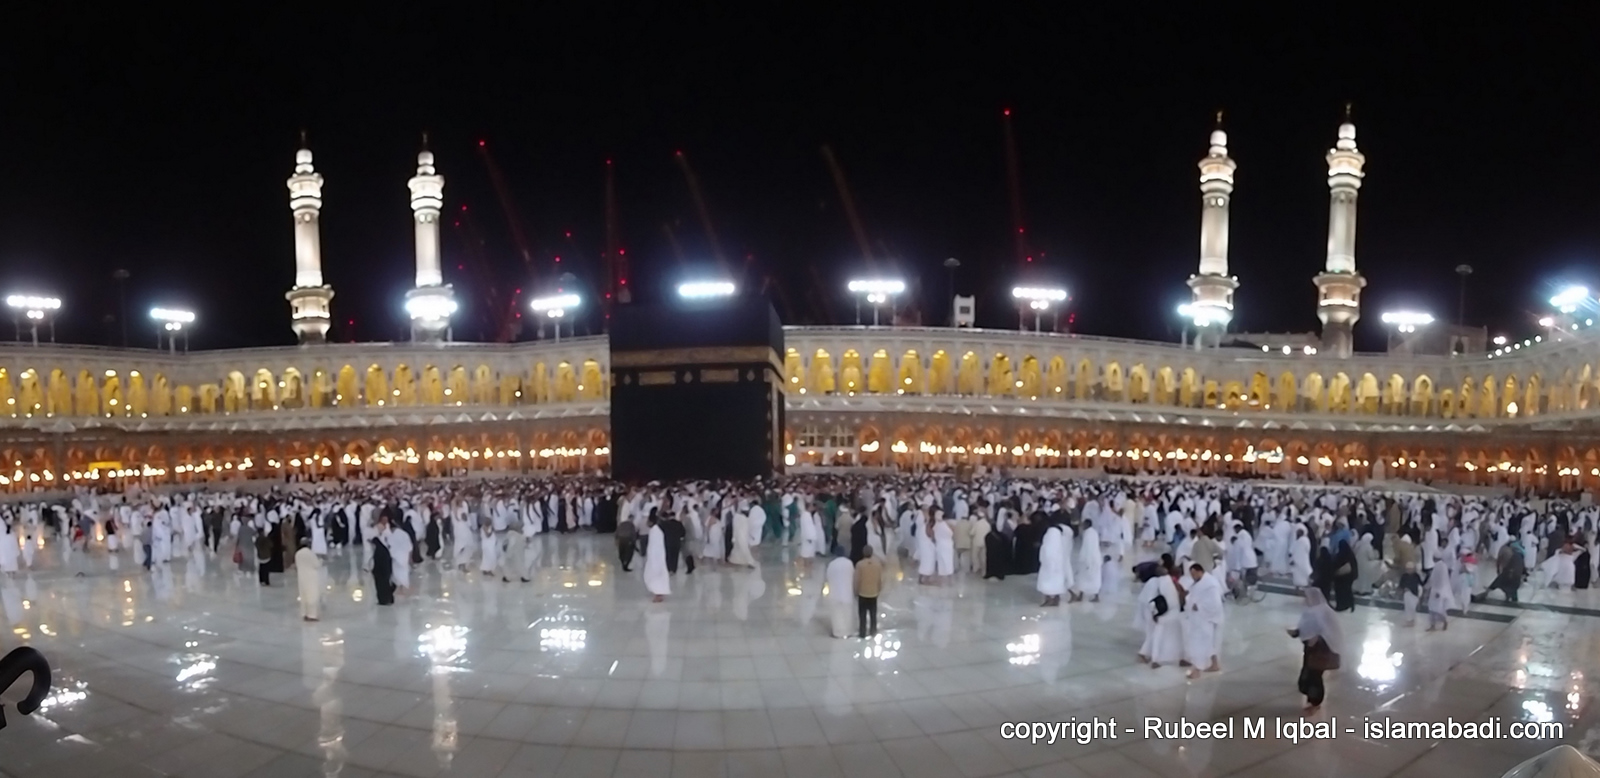 Old Images Of Mecca And Madina, Check Out Old Images Of ...